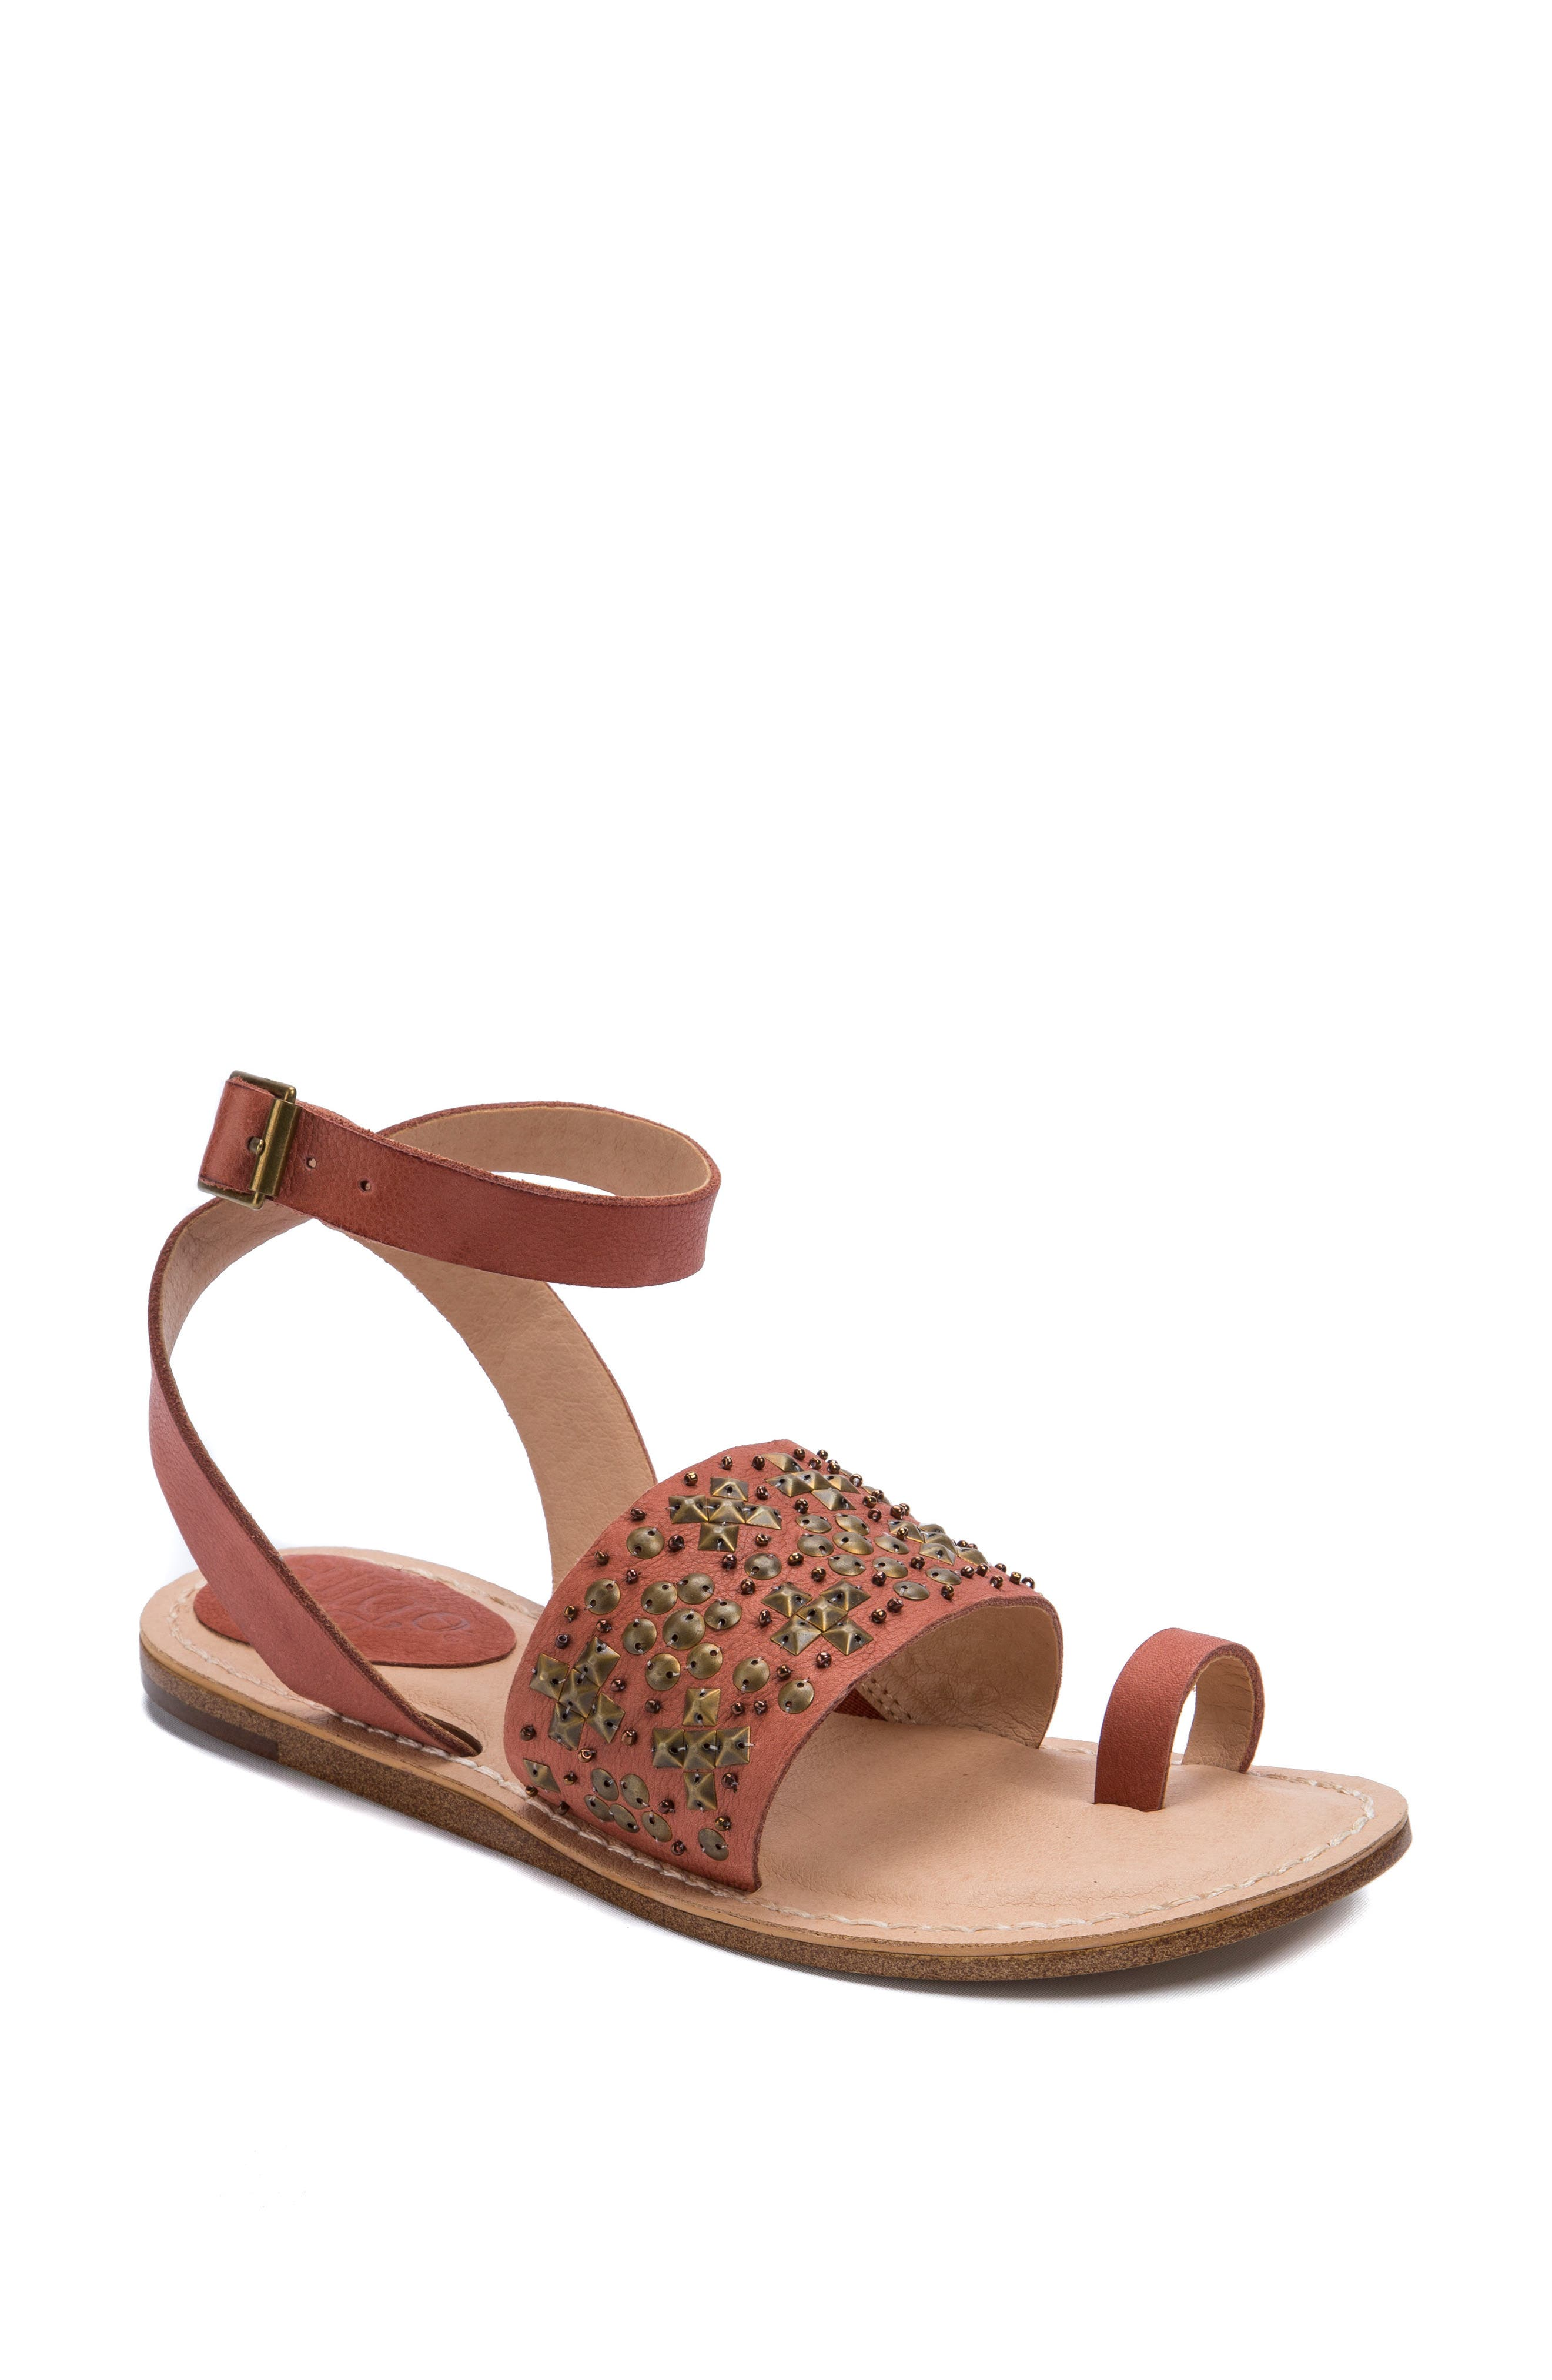 Vera Embellished Sandal,                             Main thumbnail 3, color,